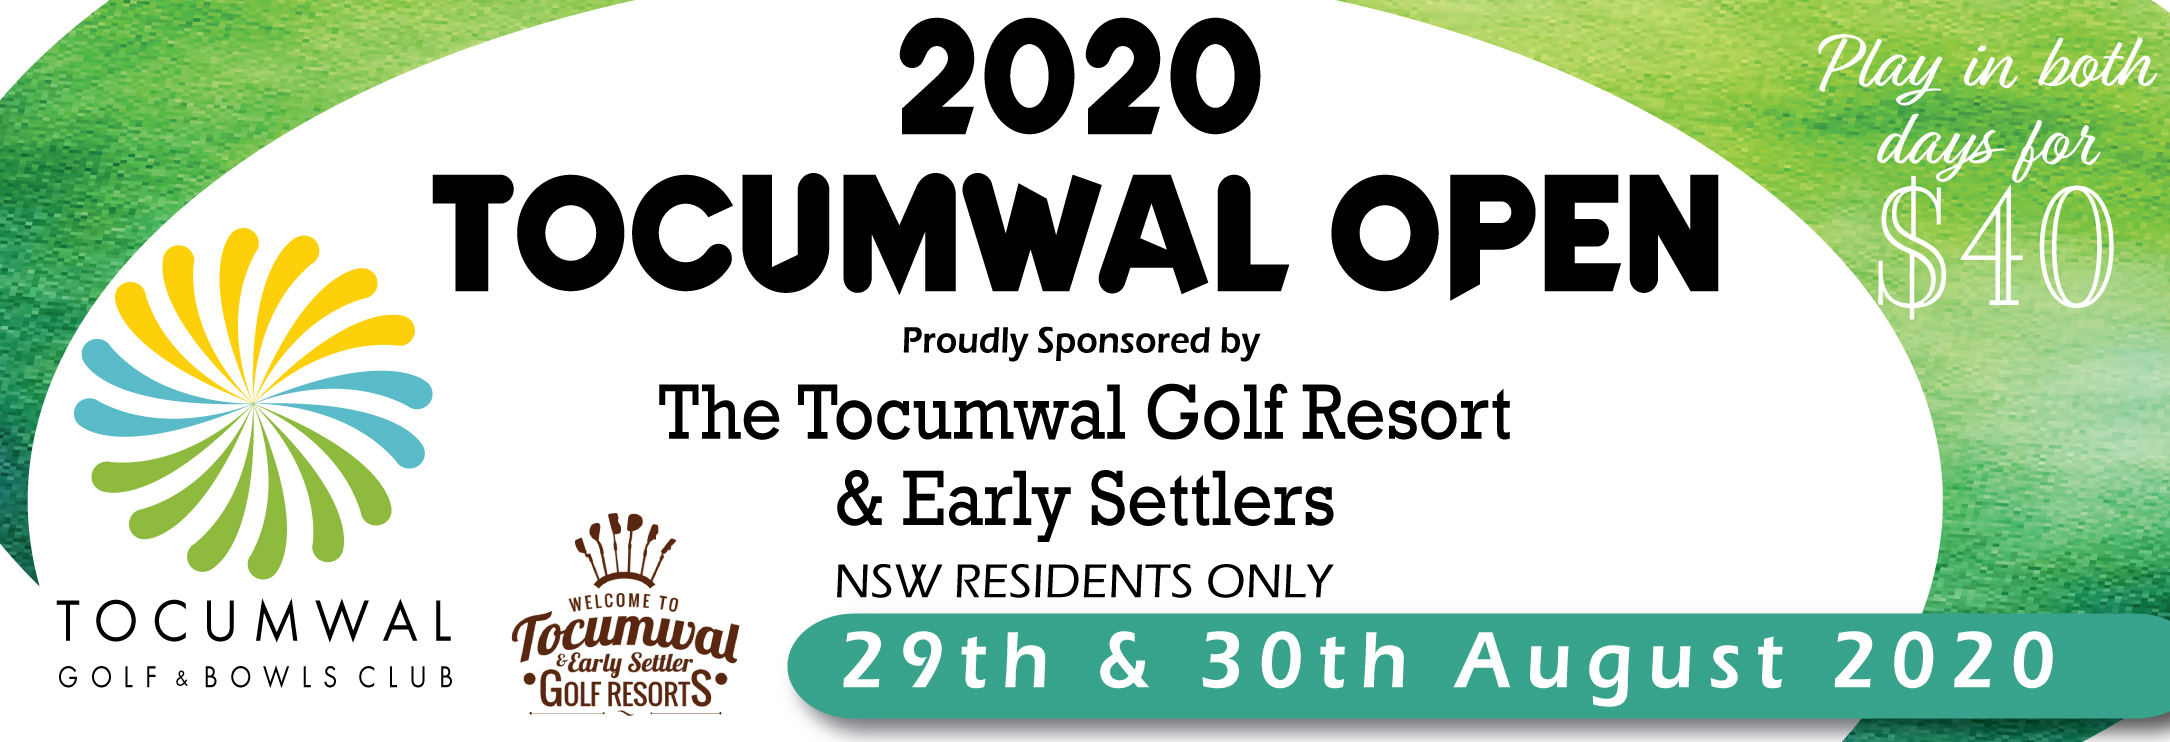 2020-Tocumwal-Open-Tournament-Entry-UPDATED-BANNER